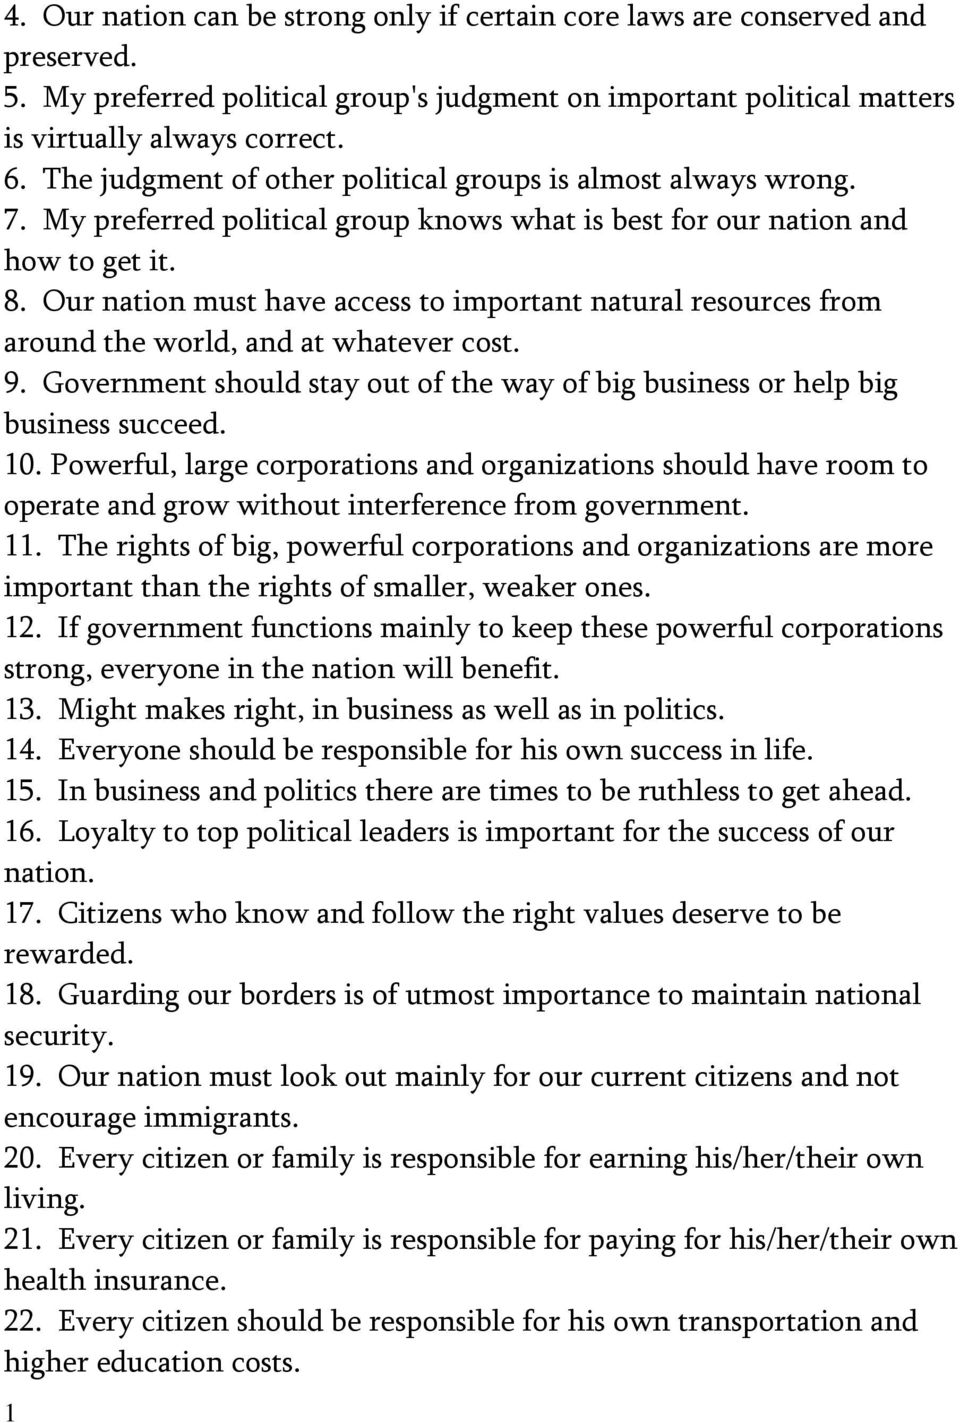 Our nation must have access to important natural resources from around the world, and at whatever cost. 9. Government should stay out of the way of big business or help big business succeed. 10.